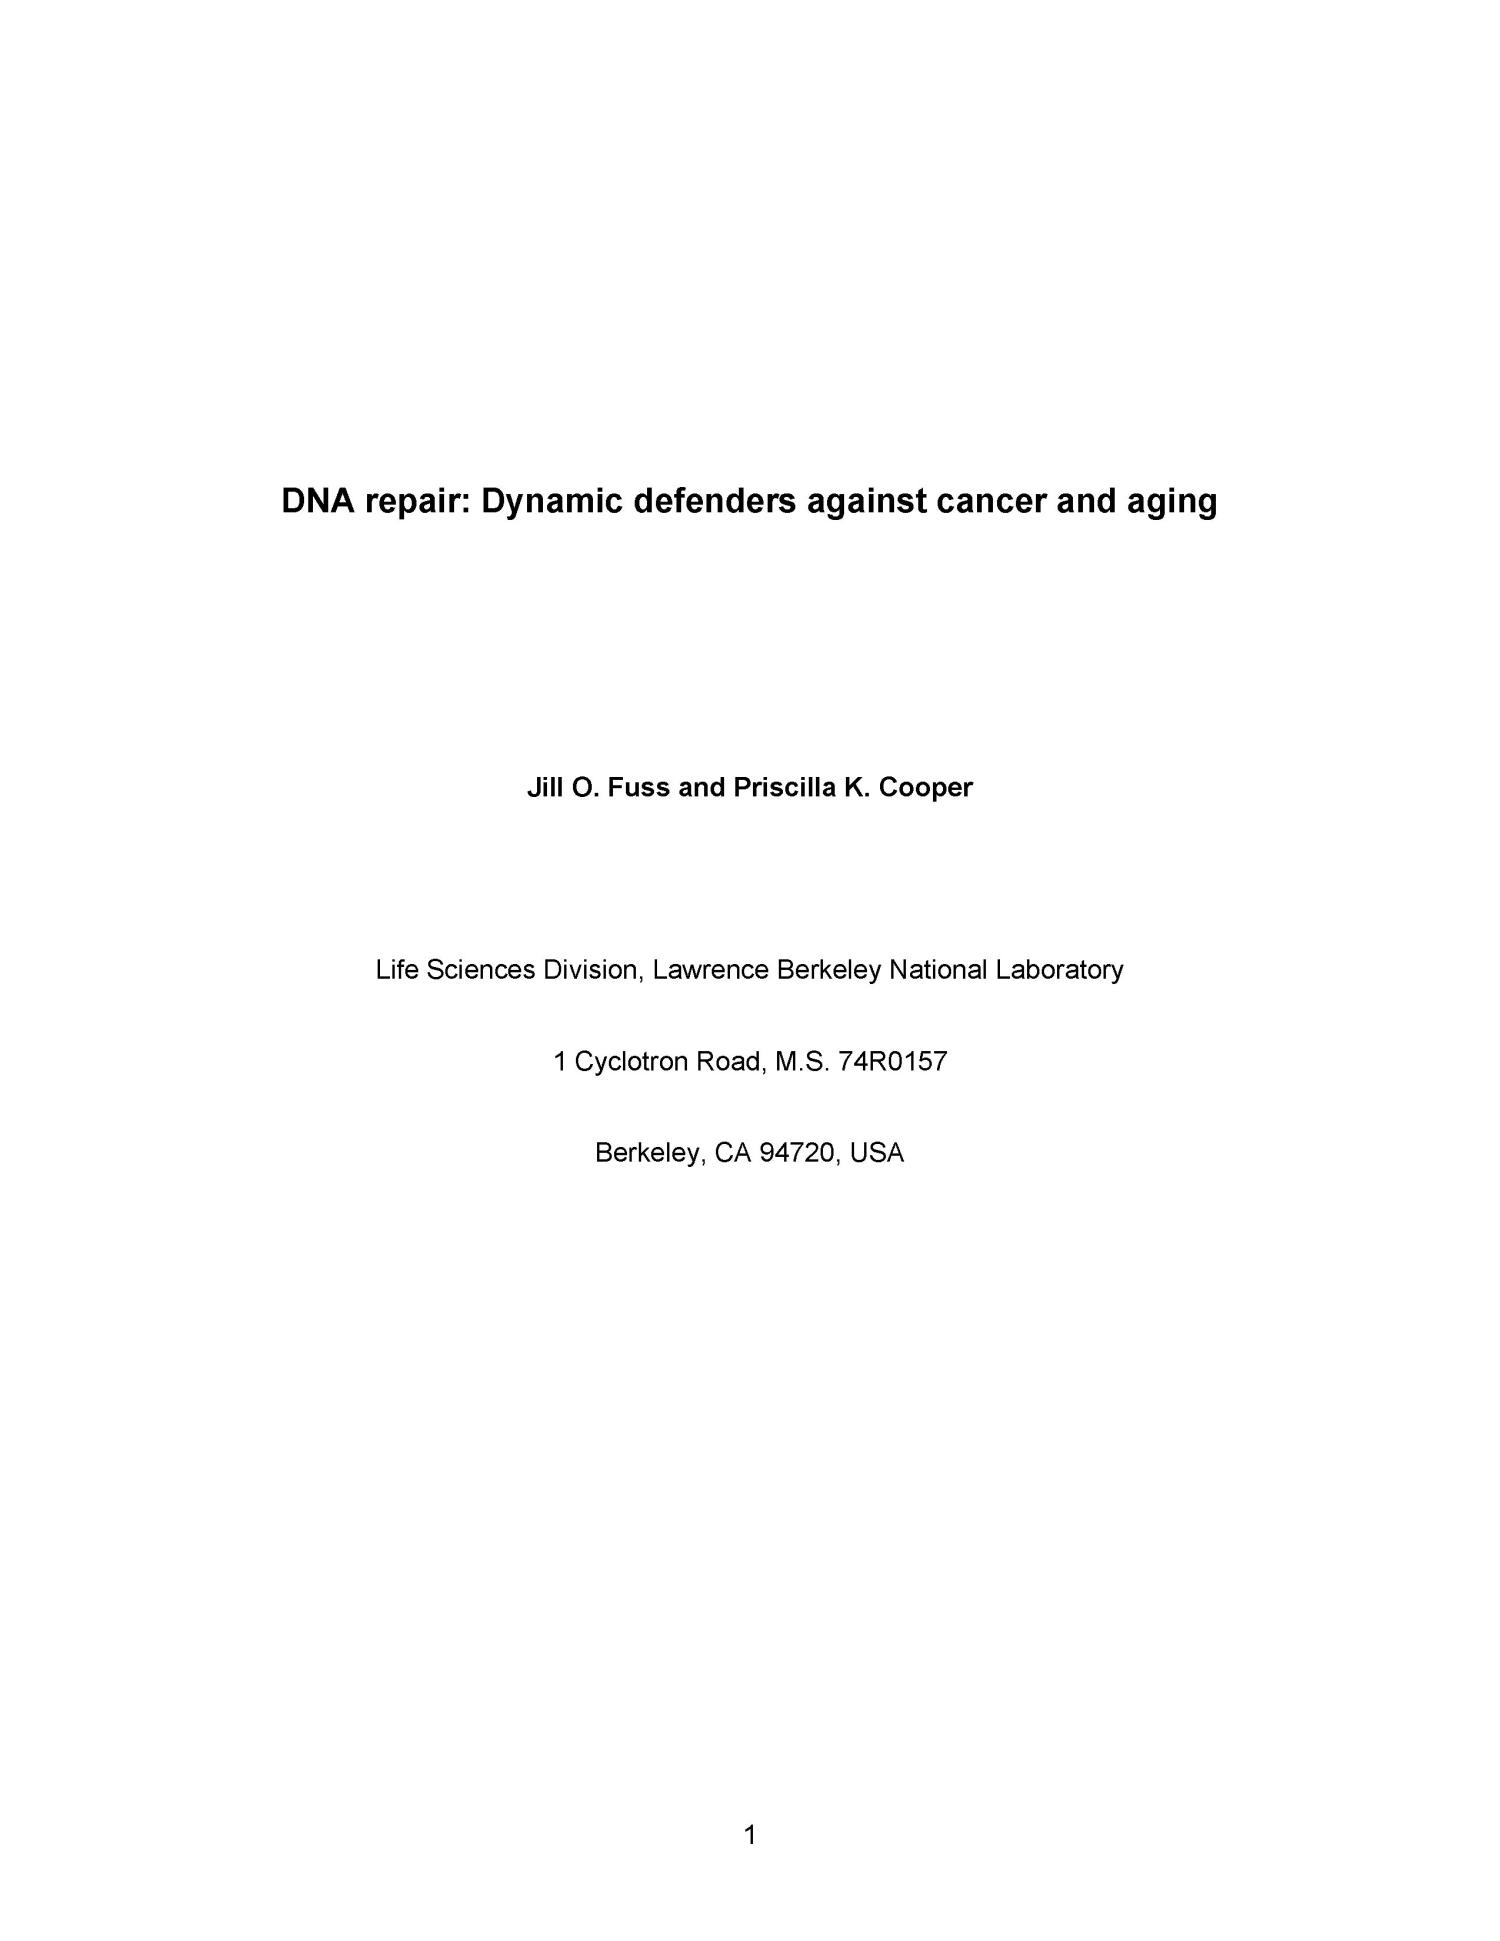 DNA repair: Dynamic defenders against cancer and aging                                                                                                      [Sequence #]: 1 of 16